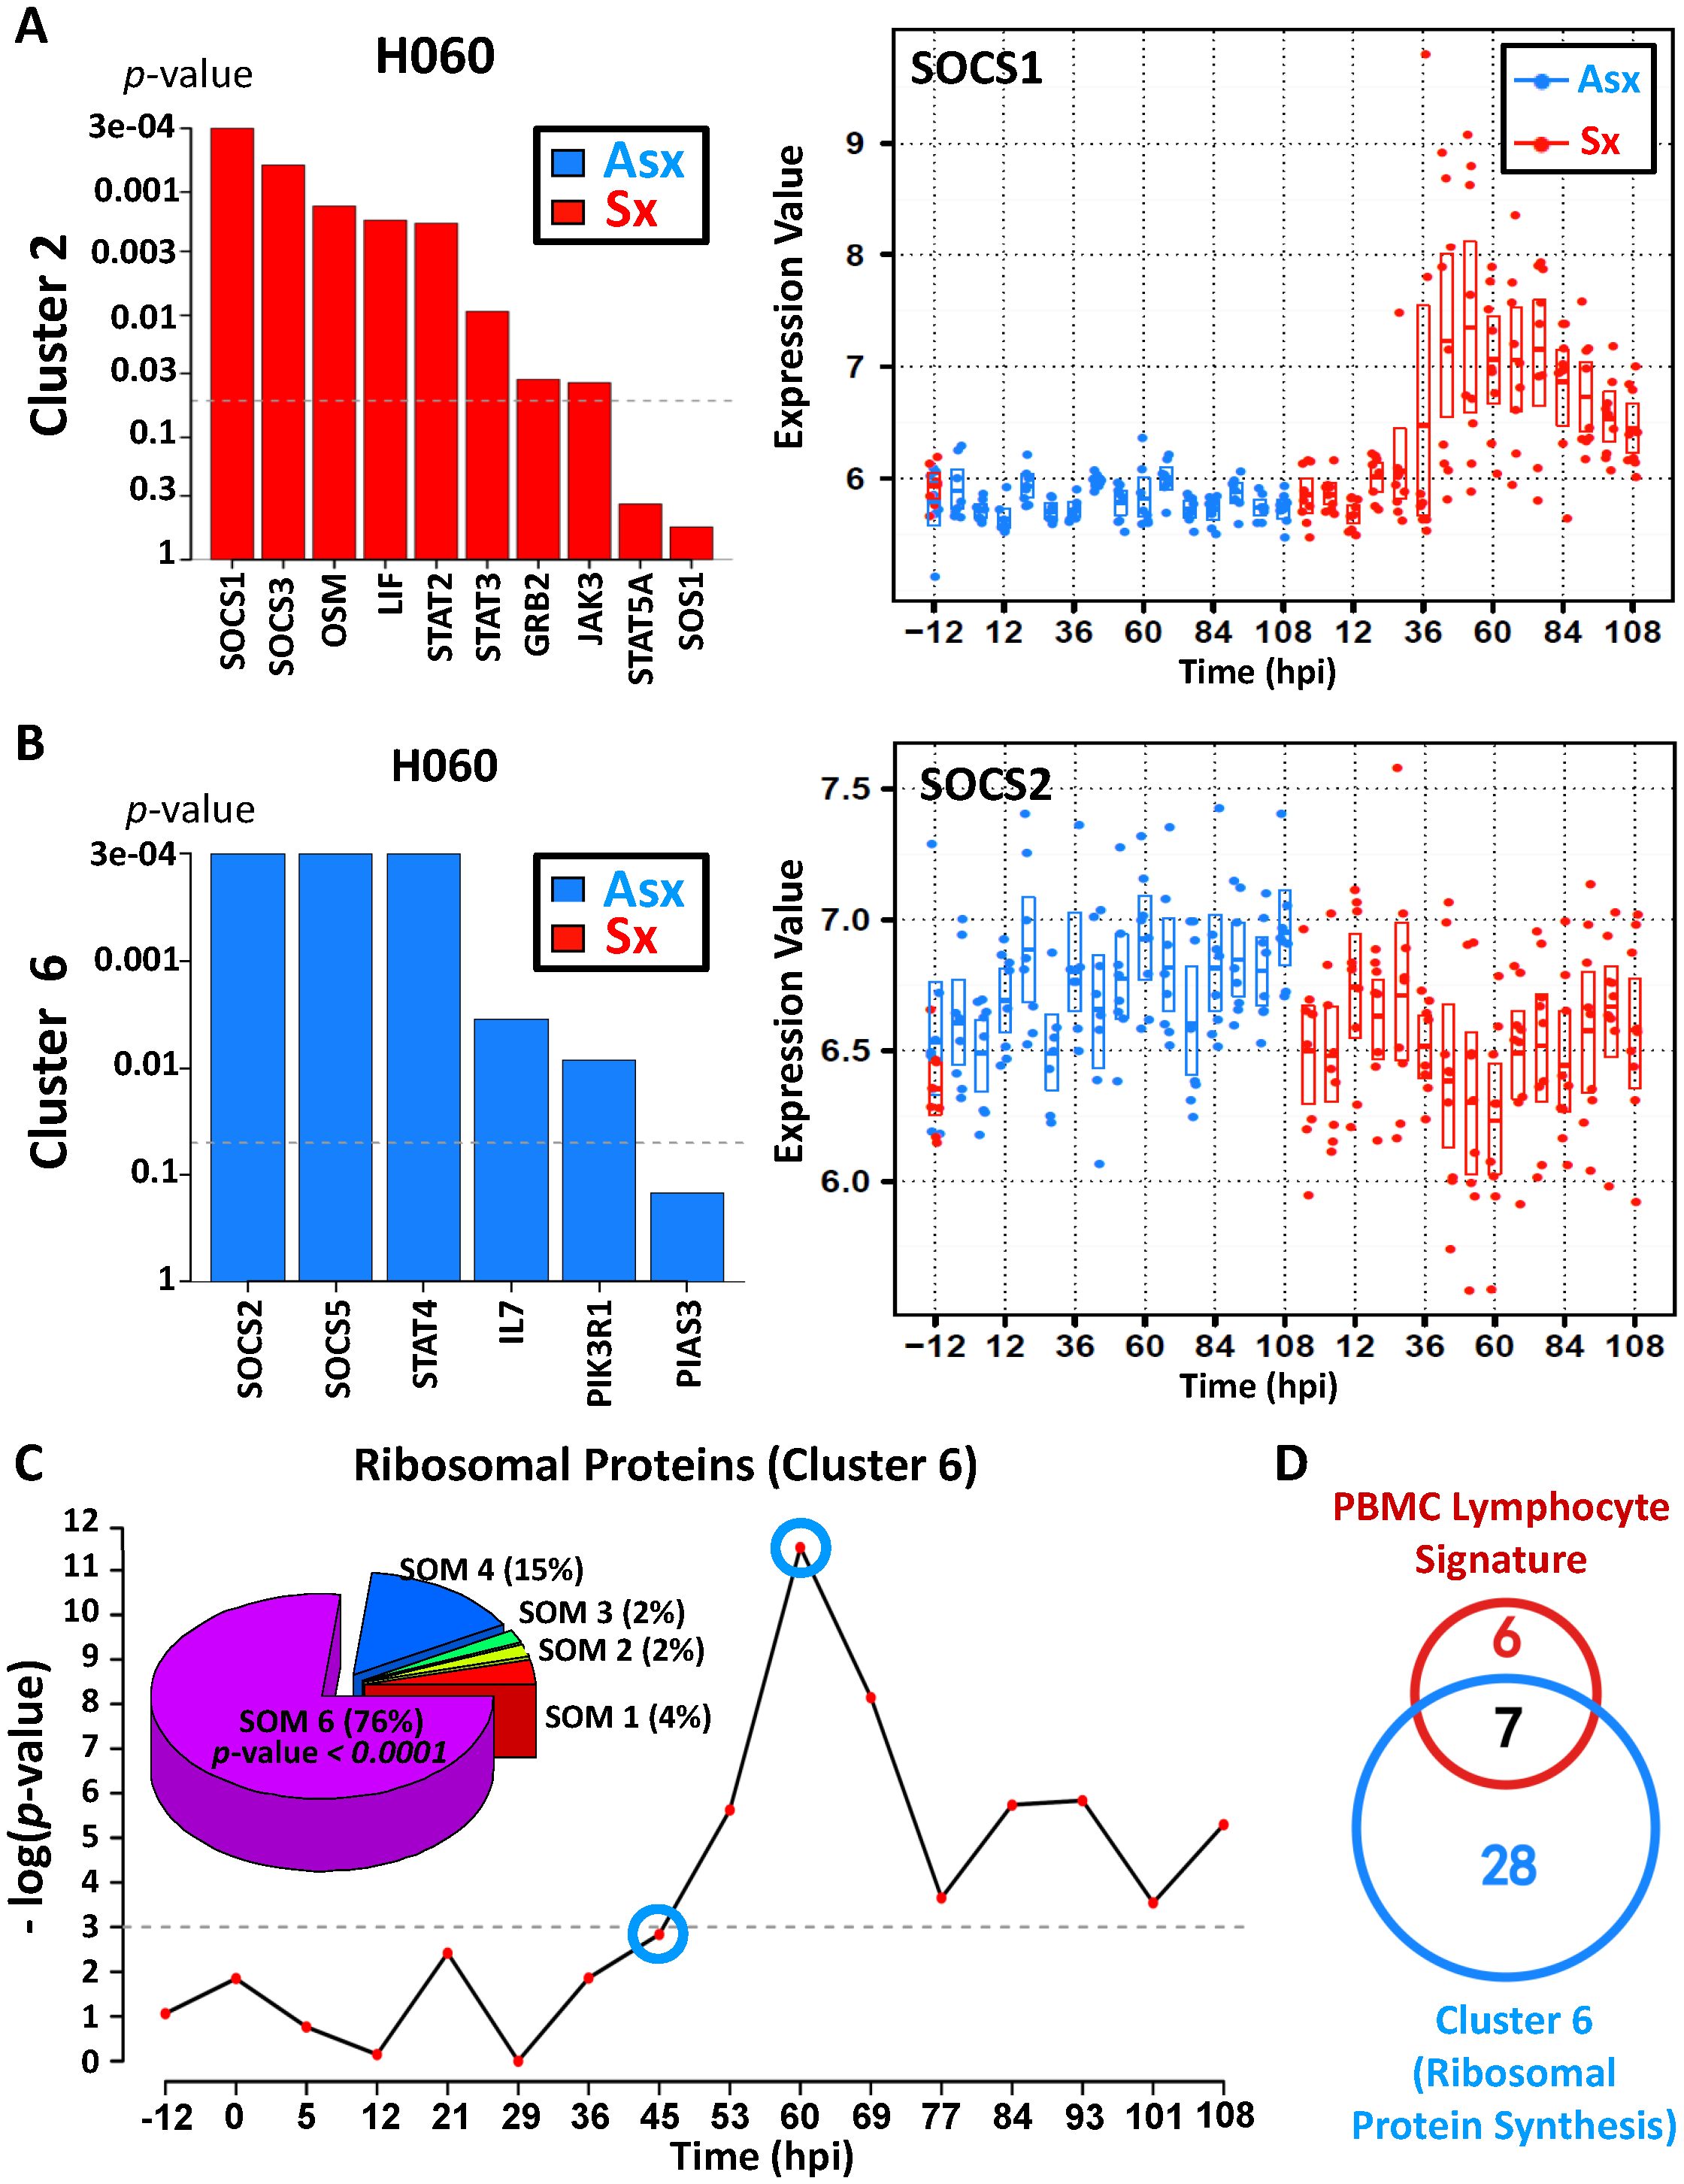 Asymptomatic hosts showed unique temporal expression kinetics of cluster 6 genes related to JAK-STAT signaling transduction and protein biosynthesis.